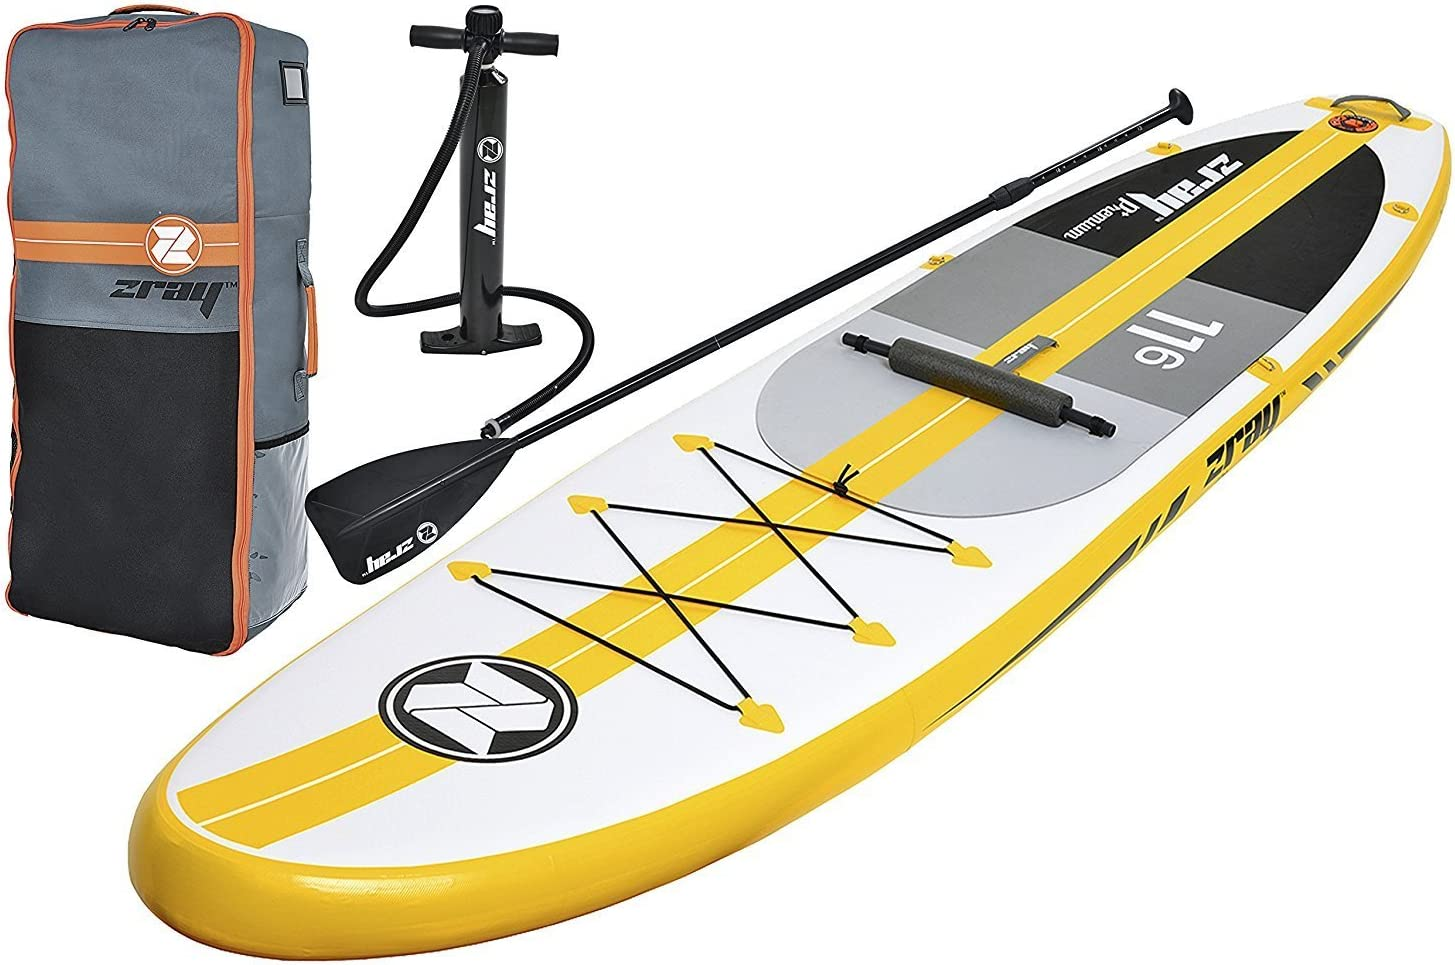 Z-Ray A4 11 6 Touring SUP Stand Up Paddle Board Package w Pump, Paddle, Footrest and Travel Backpack, 6 Thick